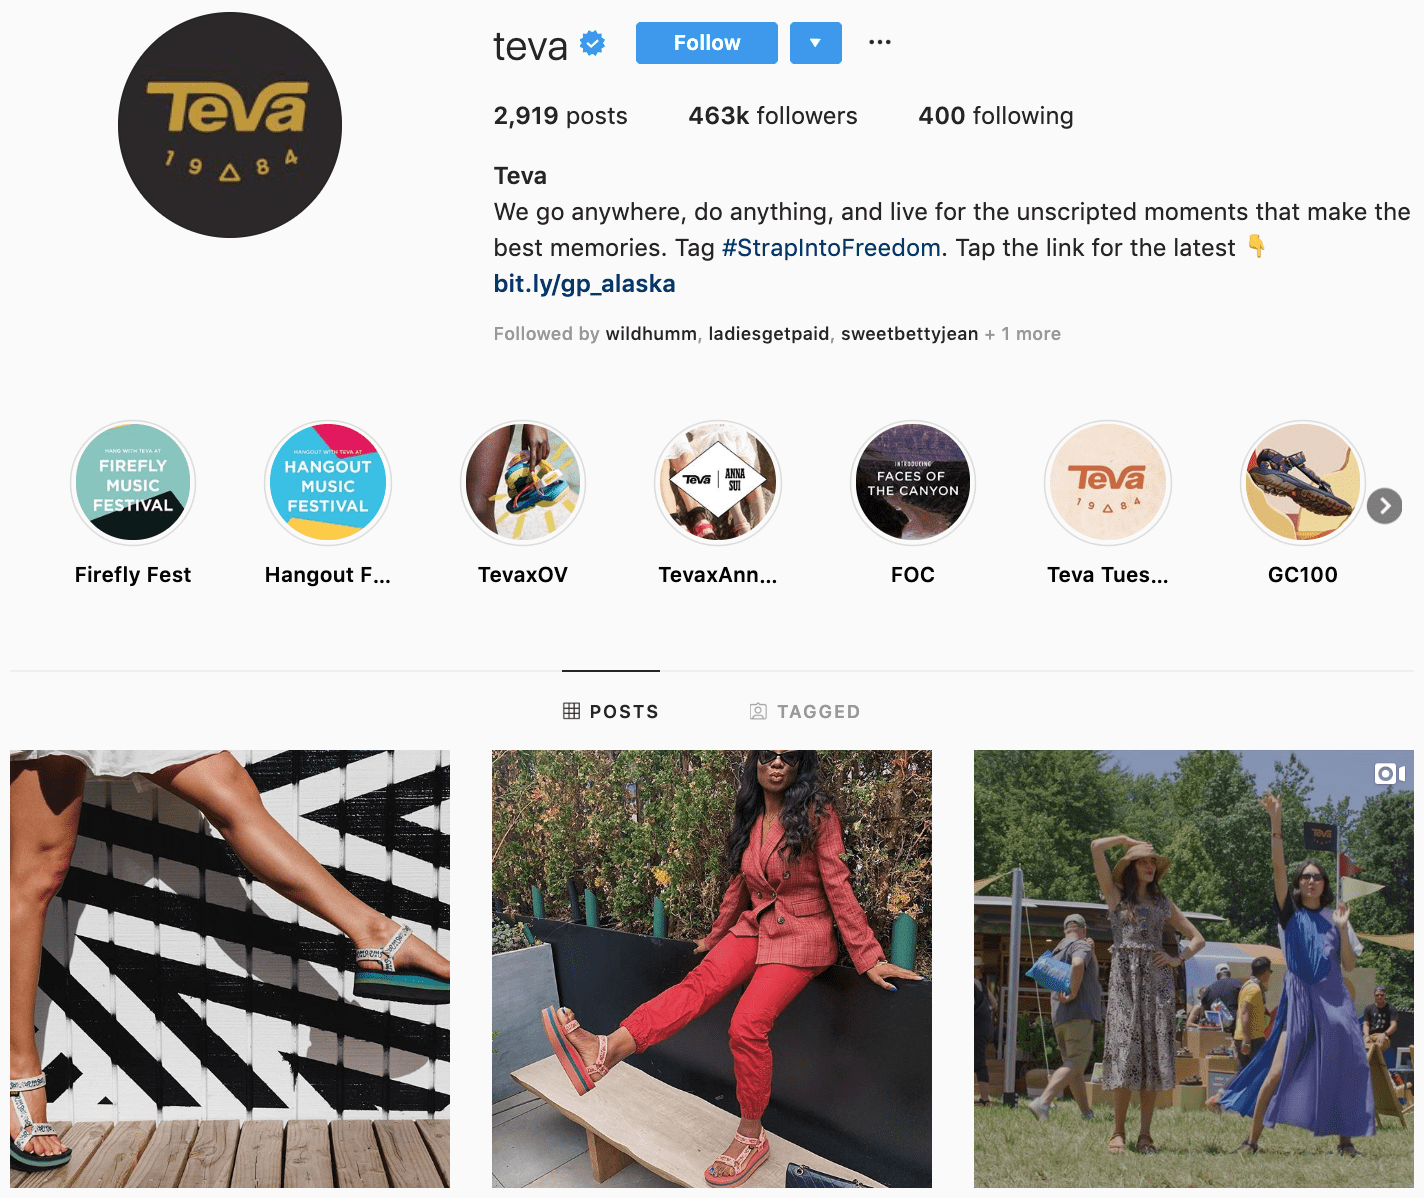 Brands Targeting Instagram Account